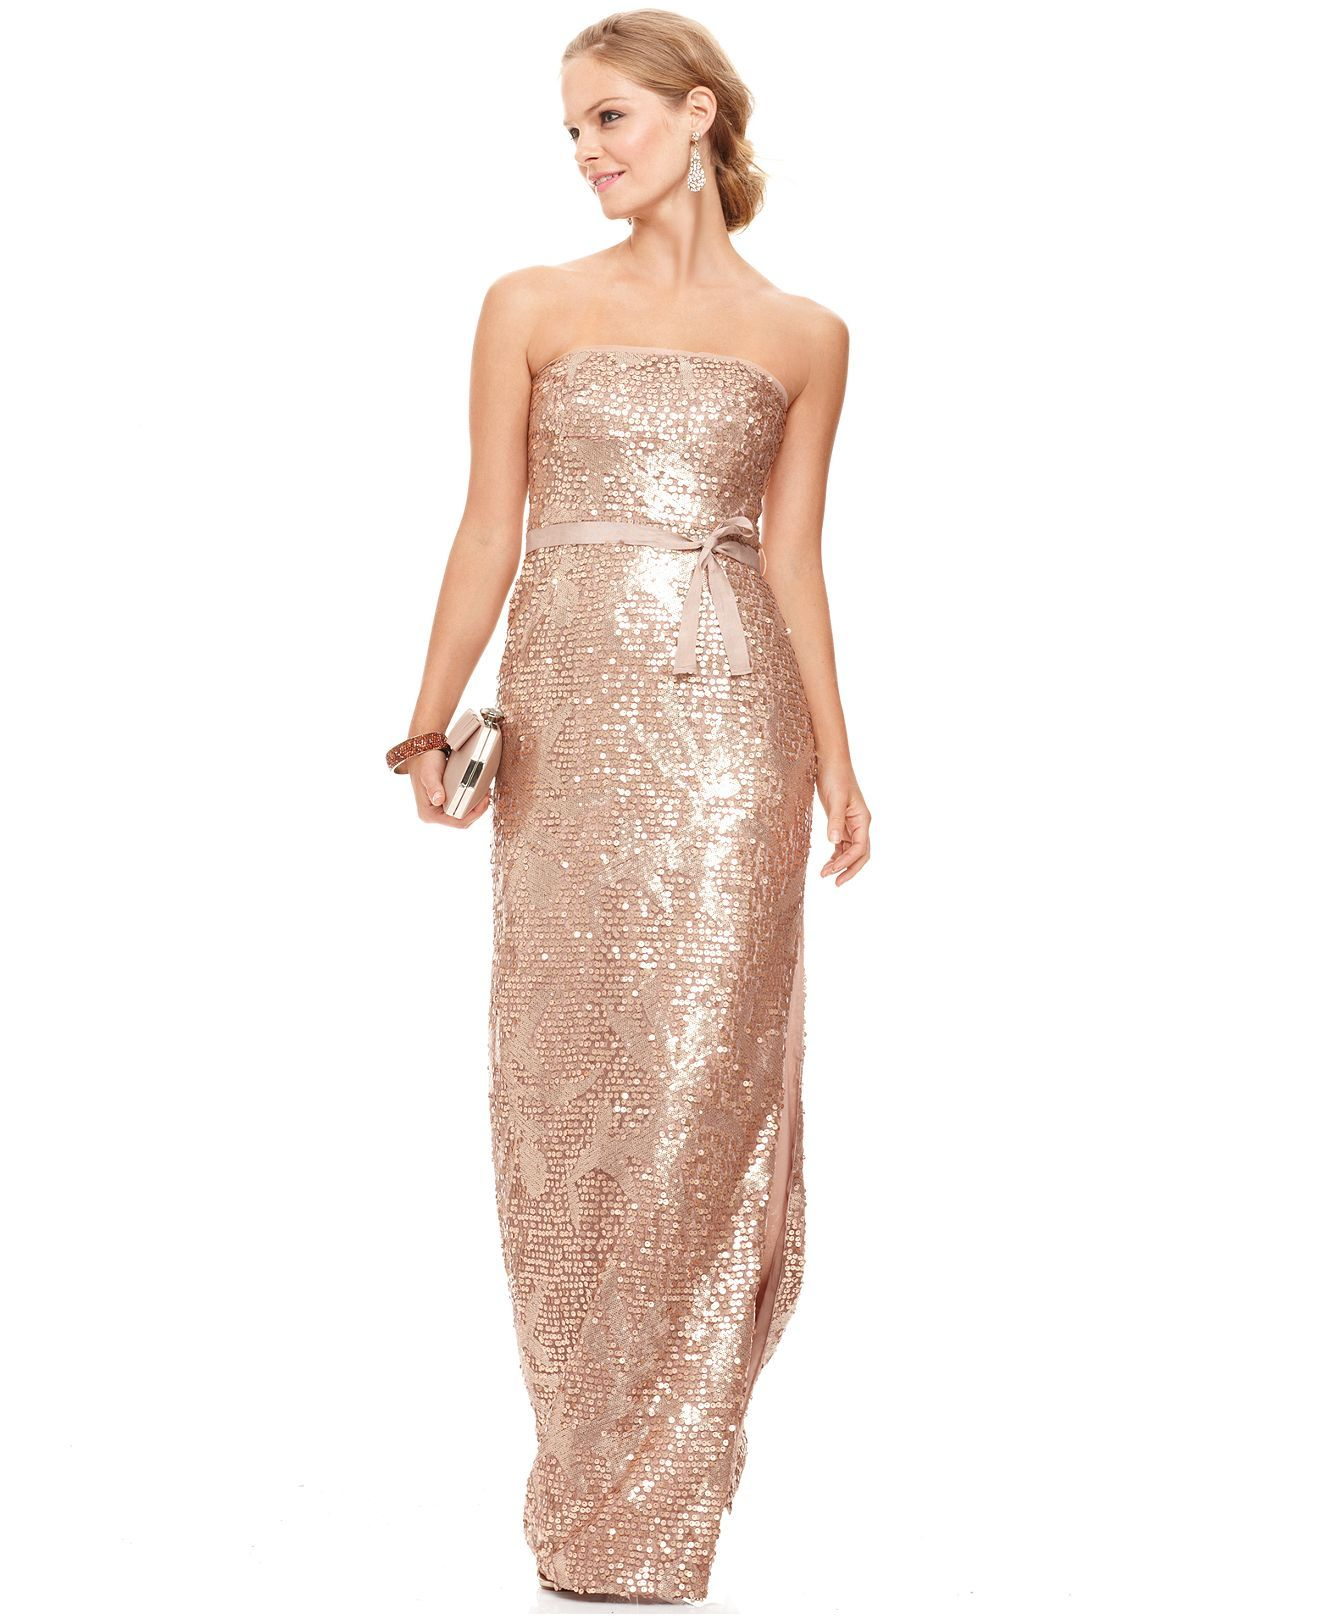 BCBGMAXAZRIA Dress, Strapless Sequined Belted Gown - Womens